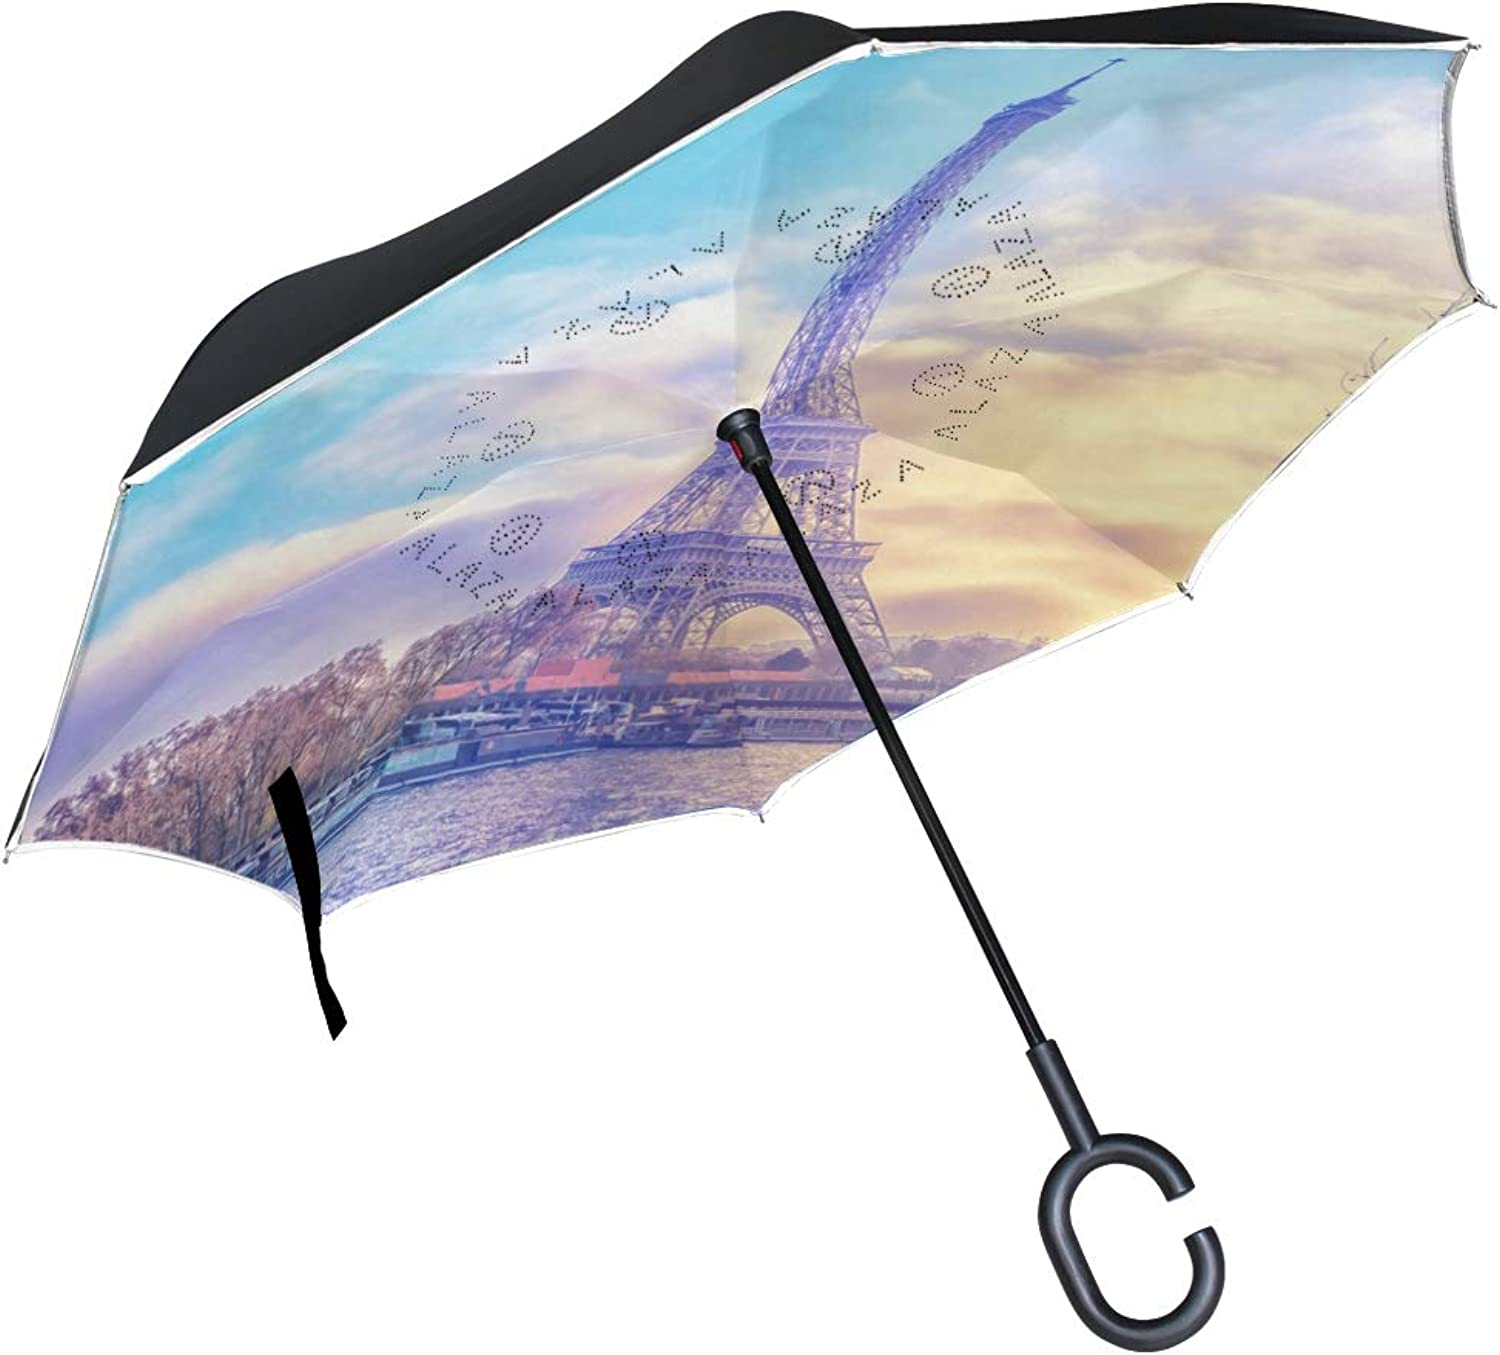 Ingreened Umbrella Double Layer Reverse Umbrella Waterproof Windproof UV Predection Straight Umbrella with CShaped Handle Eiffel Tower at Sunset Digital Printing for Car Rain Outdoor Use